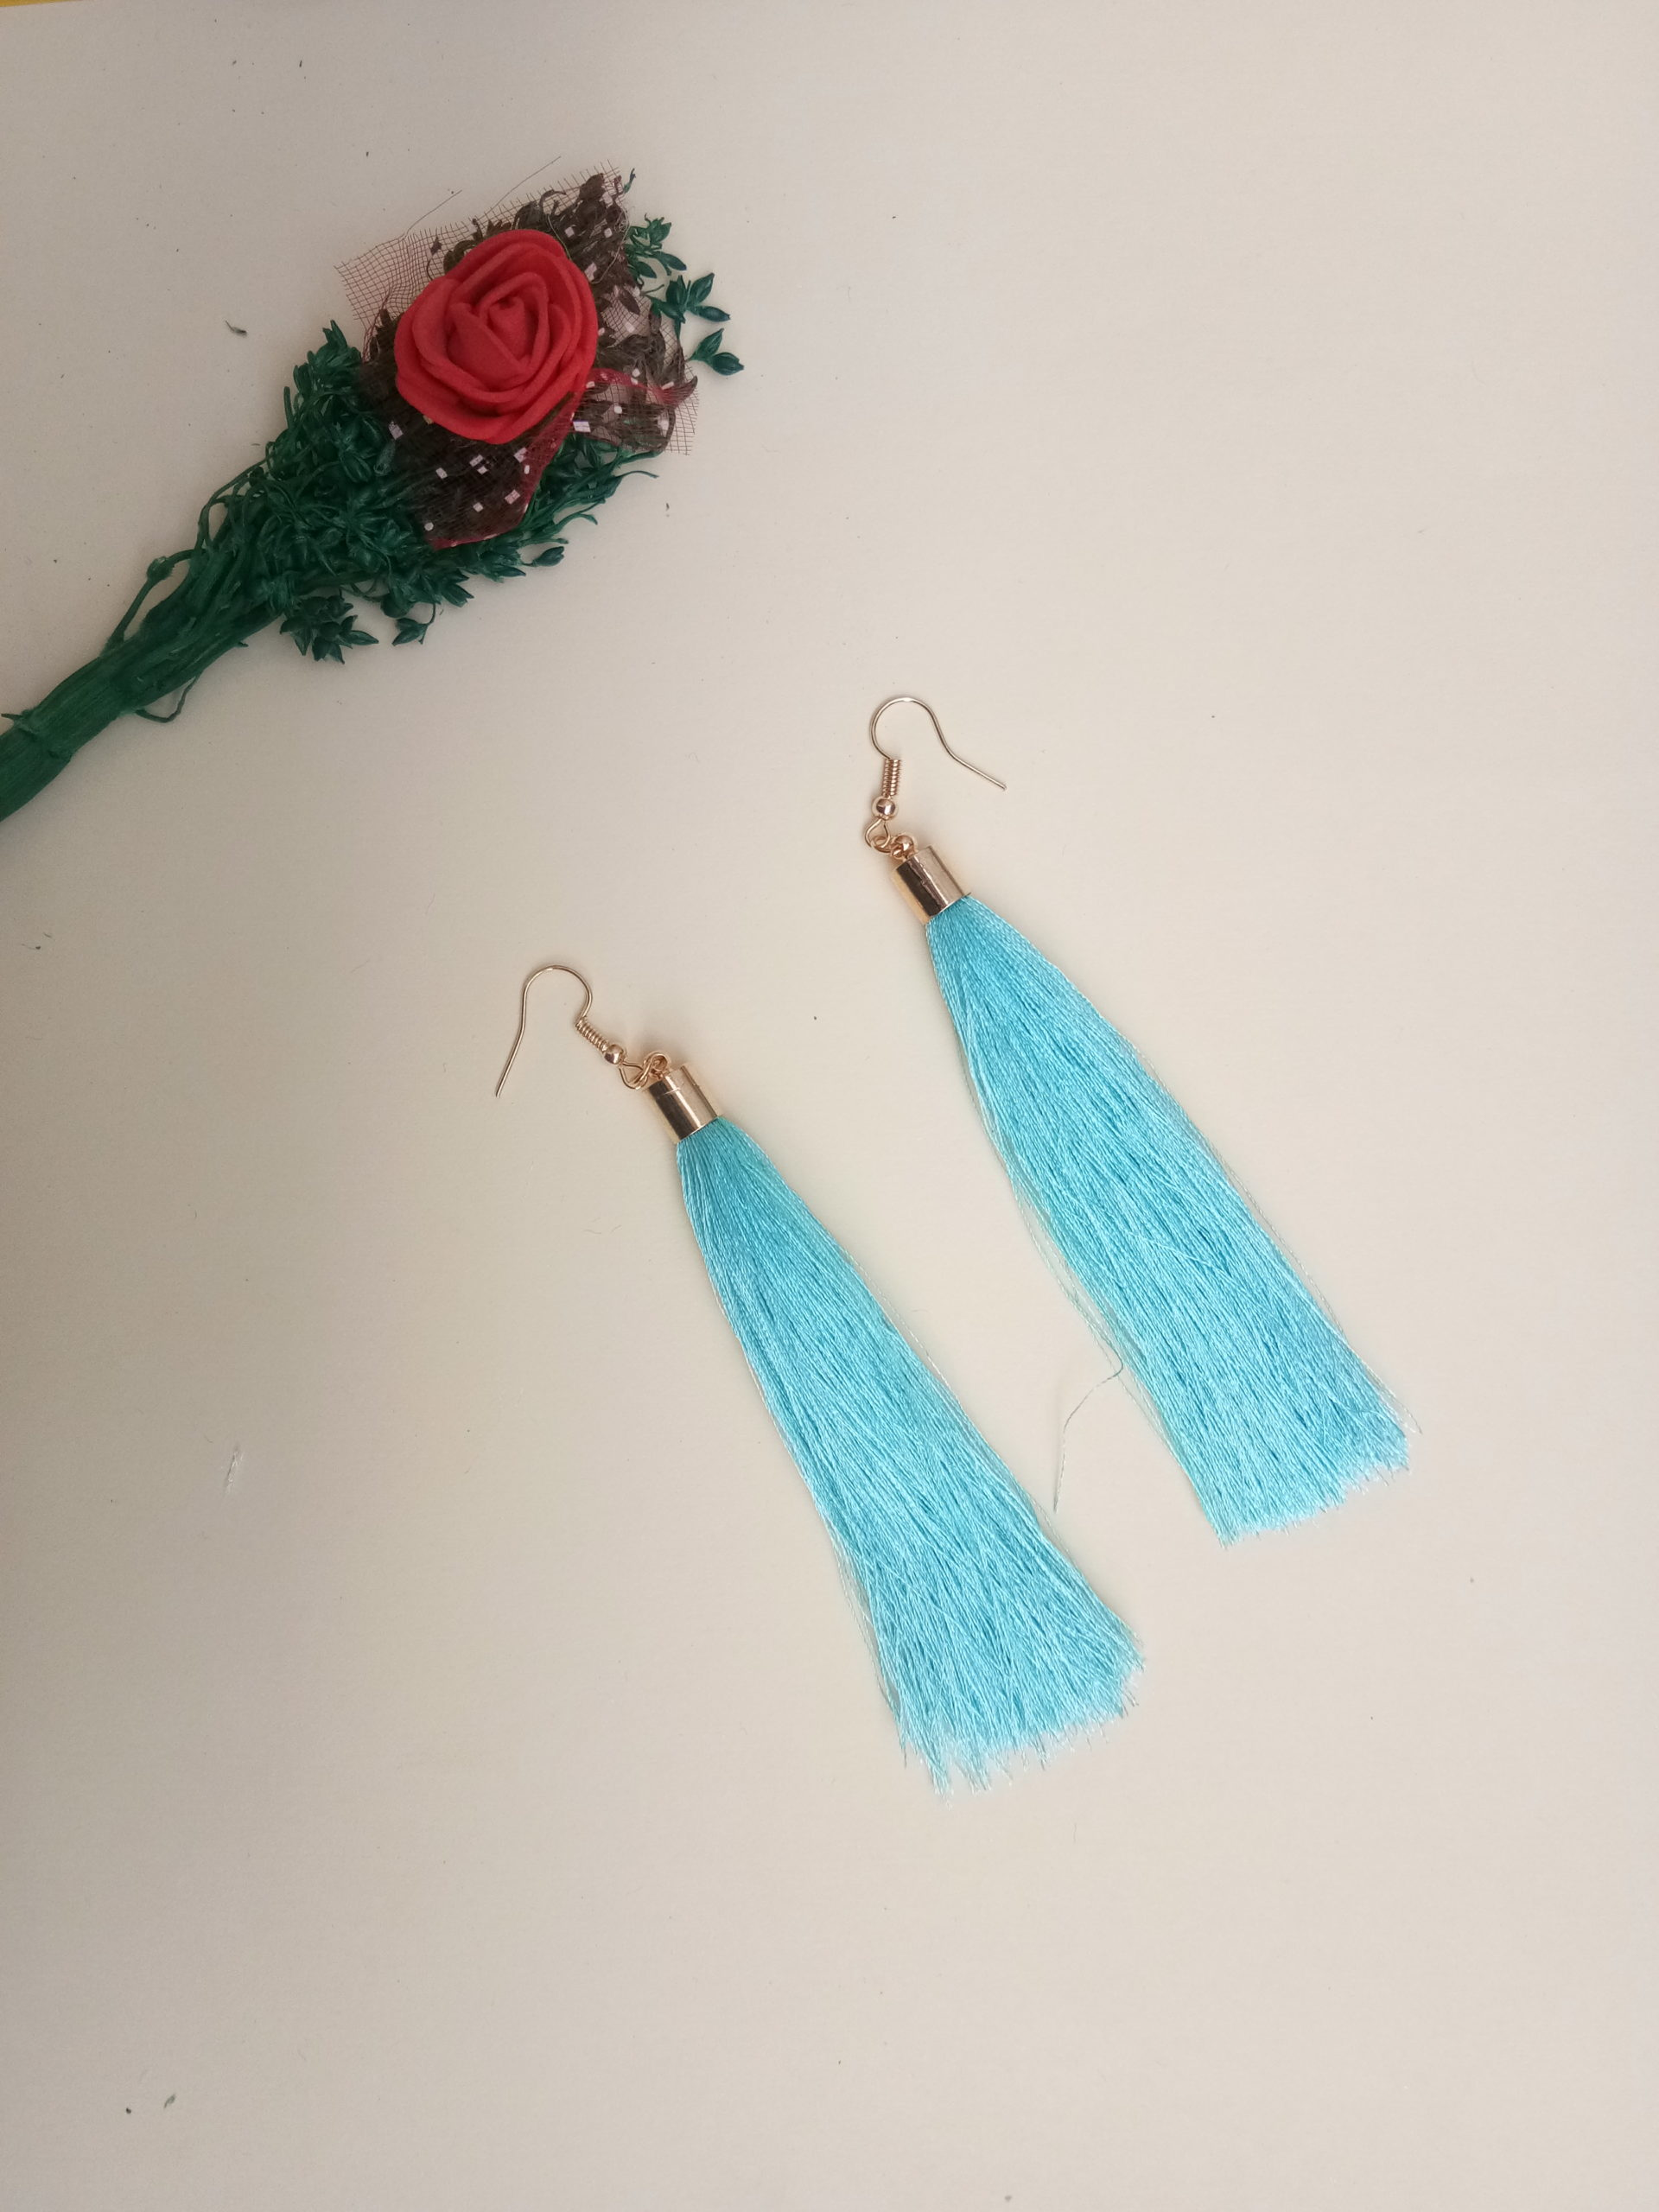 buy handmade turquoise colour thread long tassel earrings for women bohemian style dangle earrings with golden cap and ear hooks 99shopmart 99SWET01_04